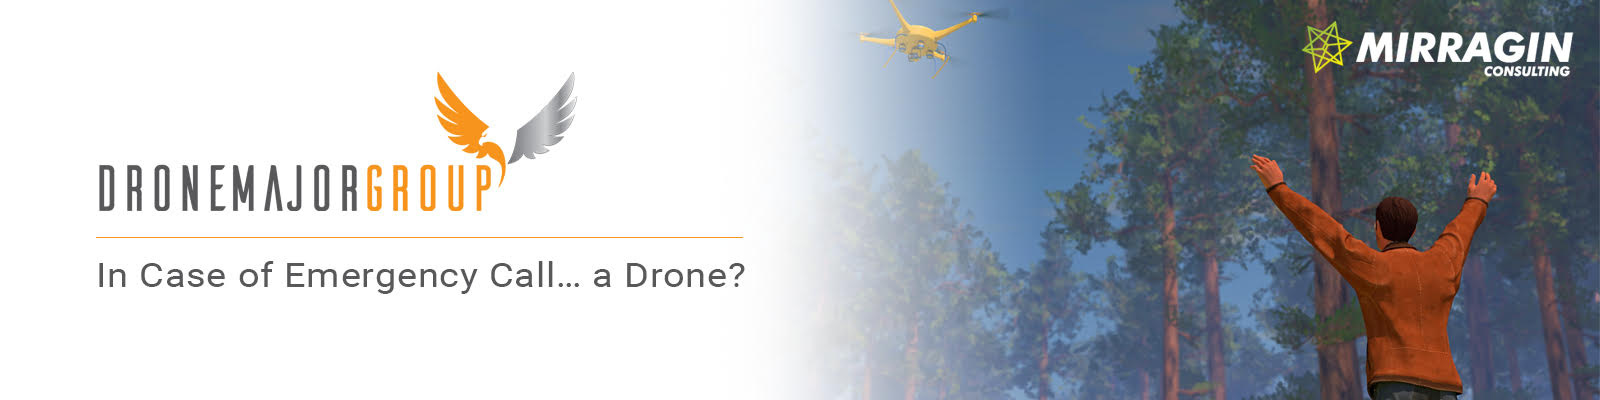 mirragin emergency services and defense drone use